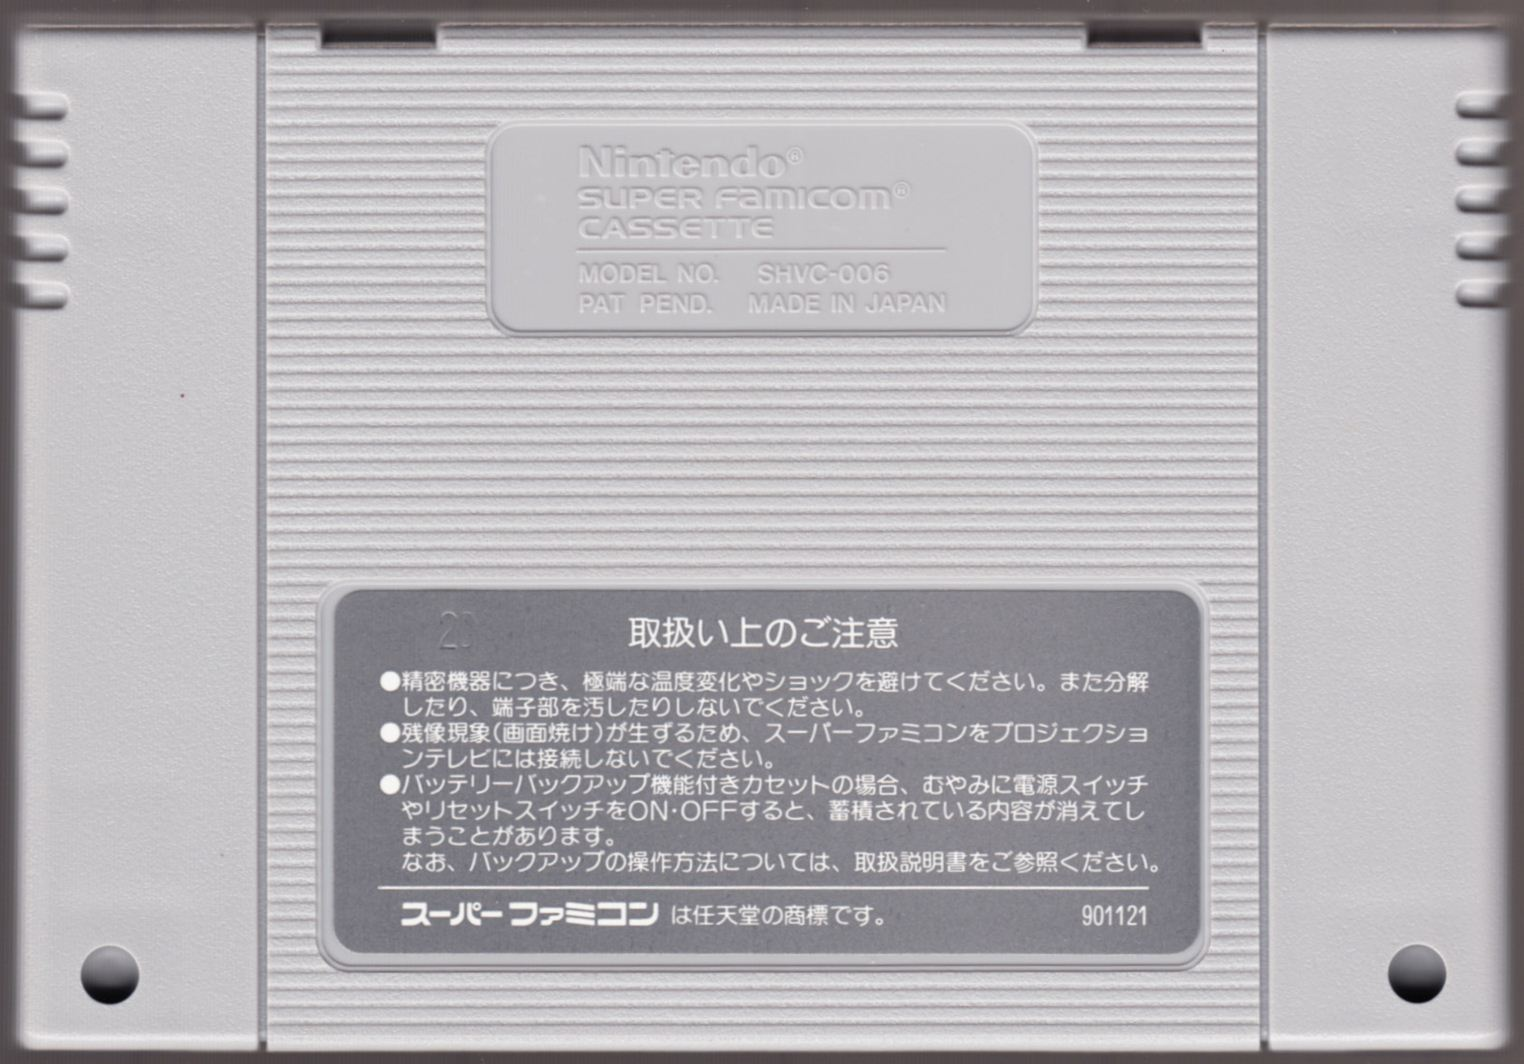 Game - Dungeon Master - JP - Super Famicom - Cartridge With #20 - Back - Scan